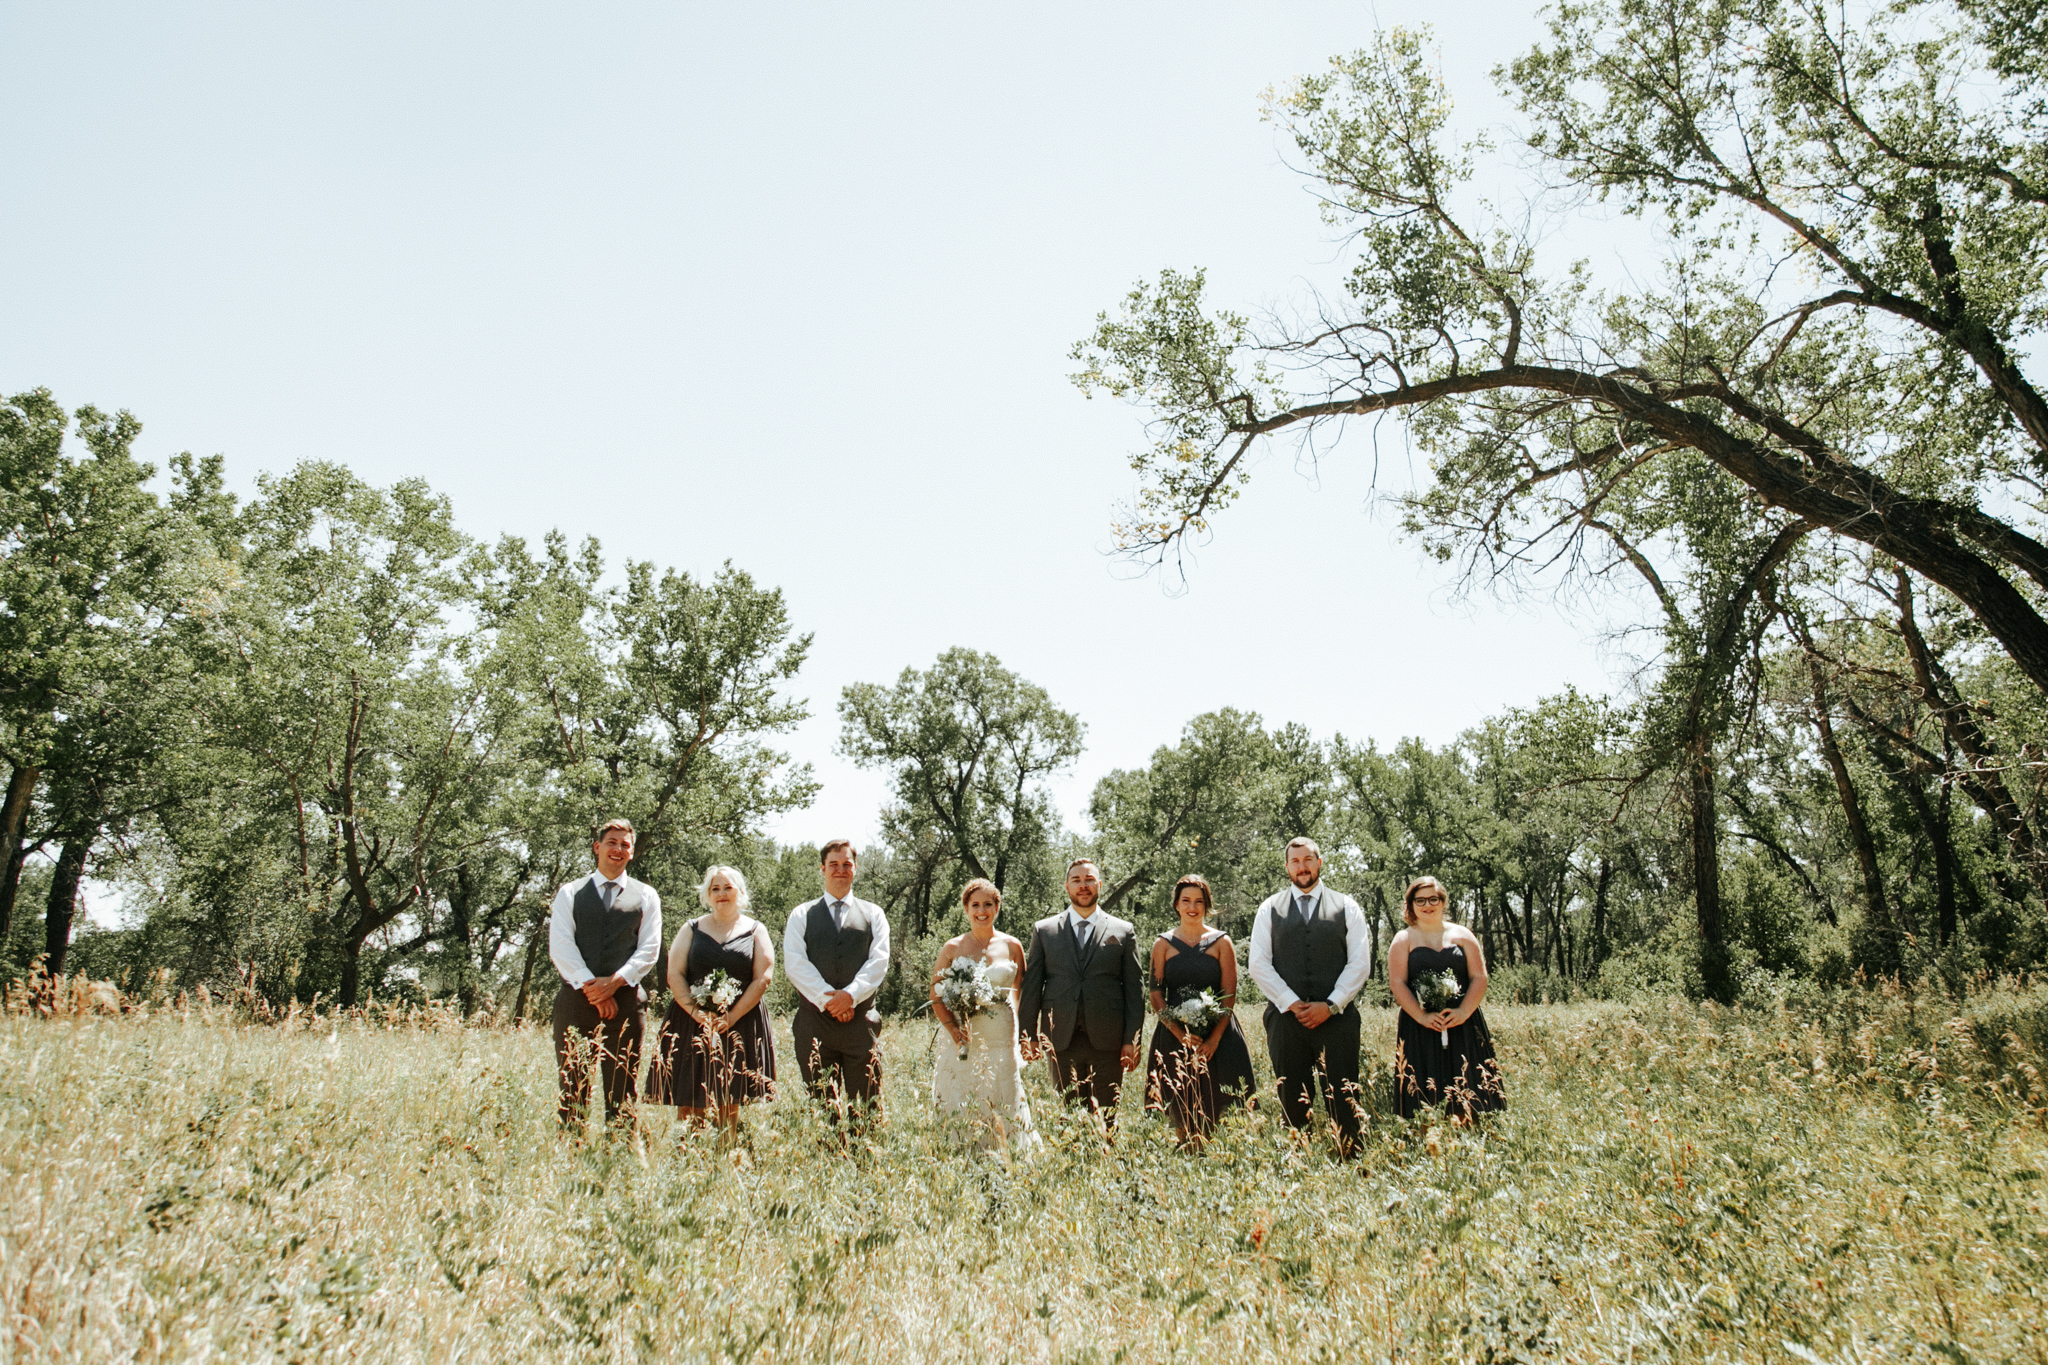 lethbridge-wedding-photographer-love-and-be-loved-photography-trent-danielle-galt-reception-picture-image-photo-98.jpg